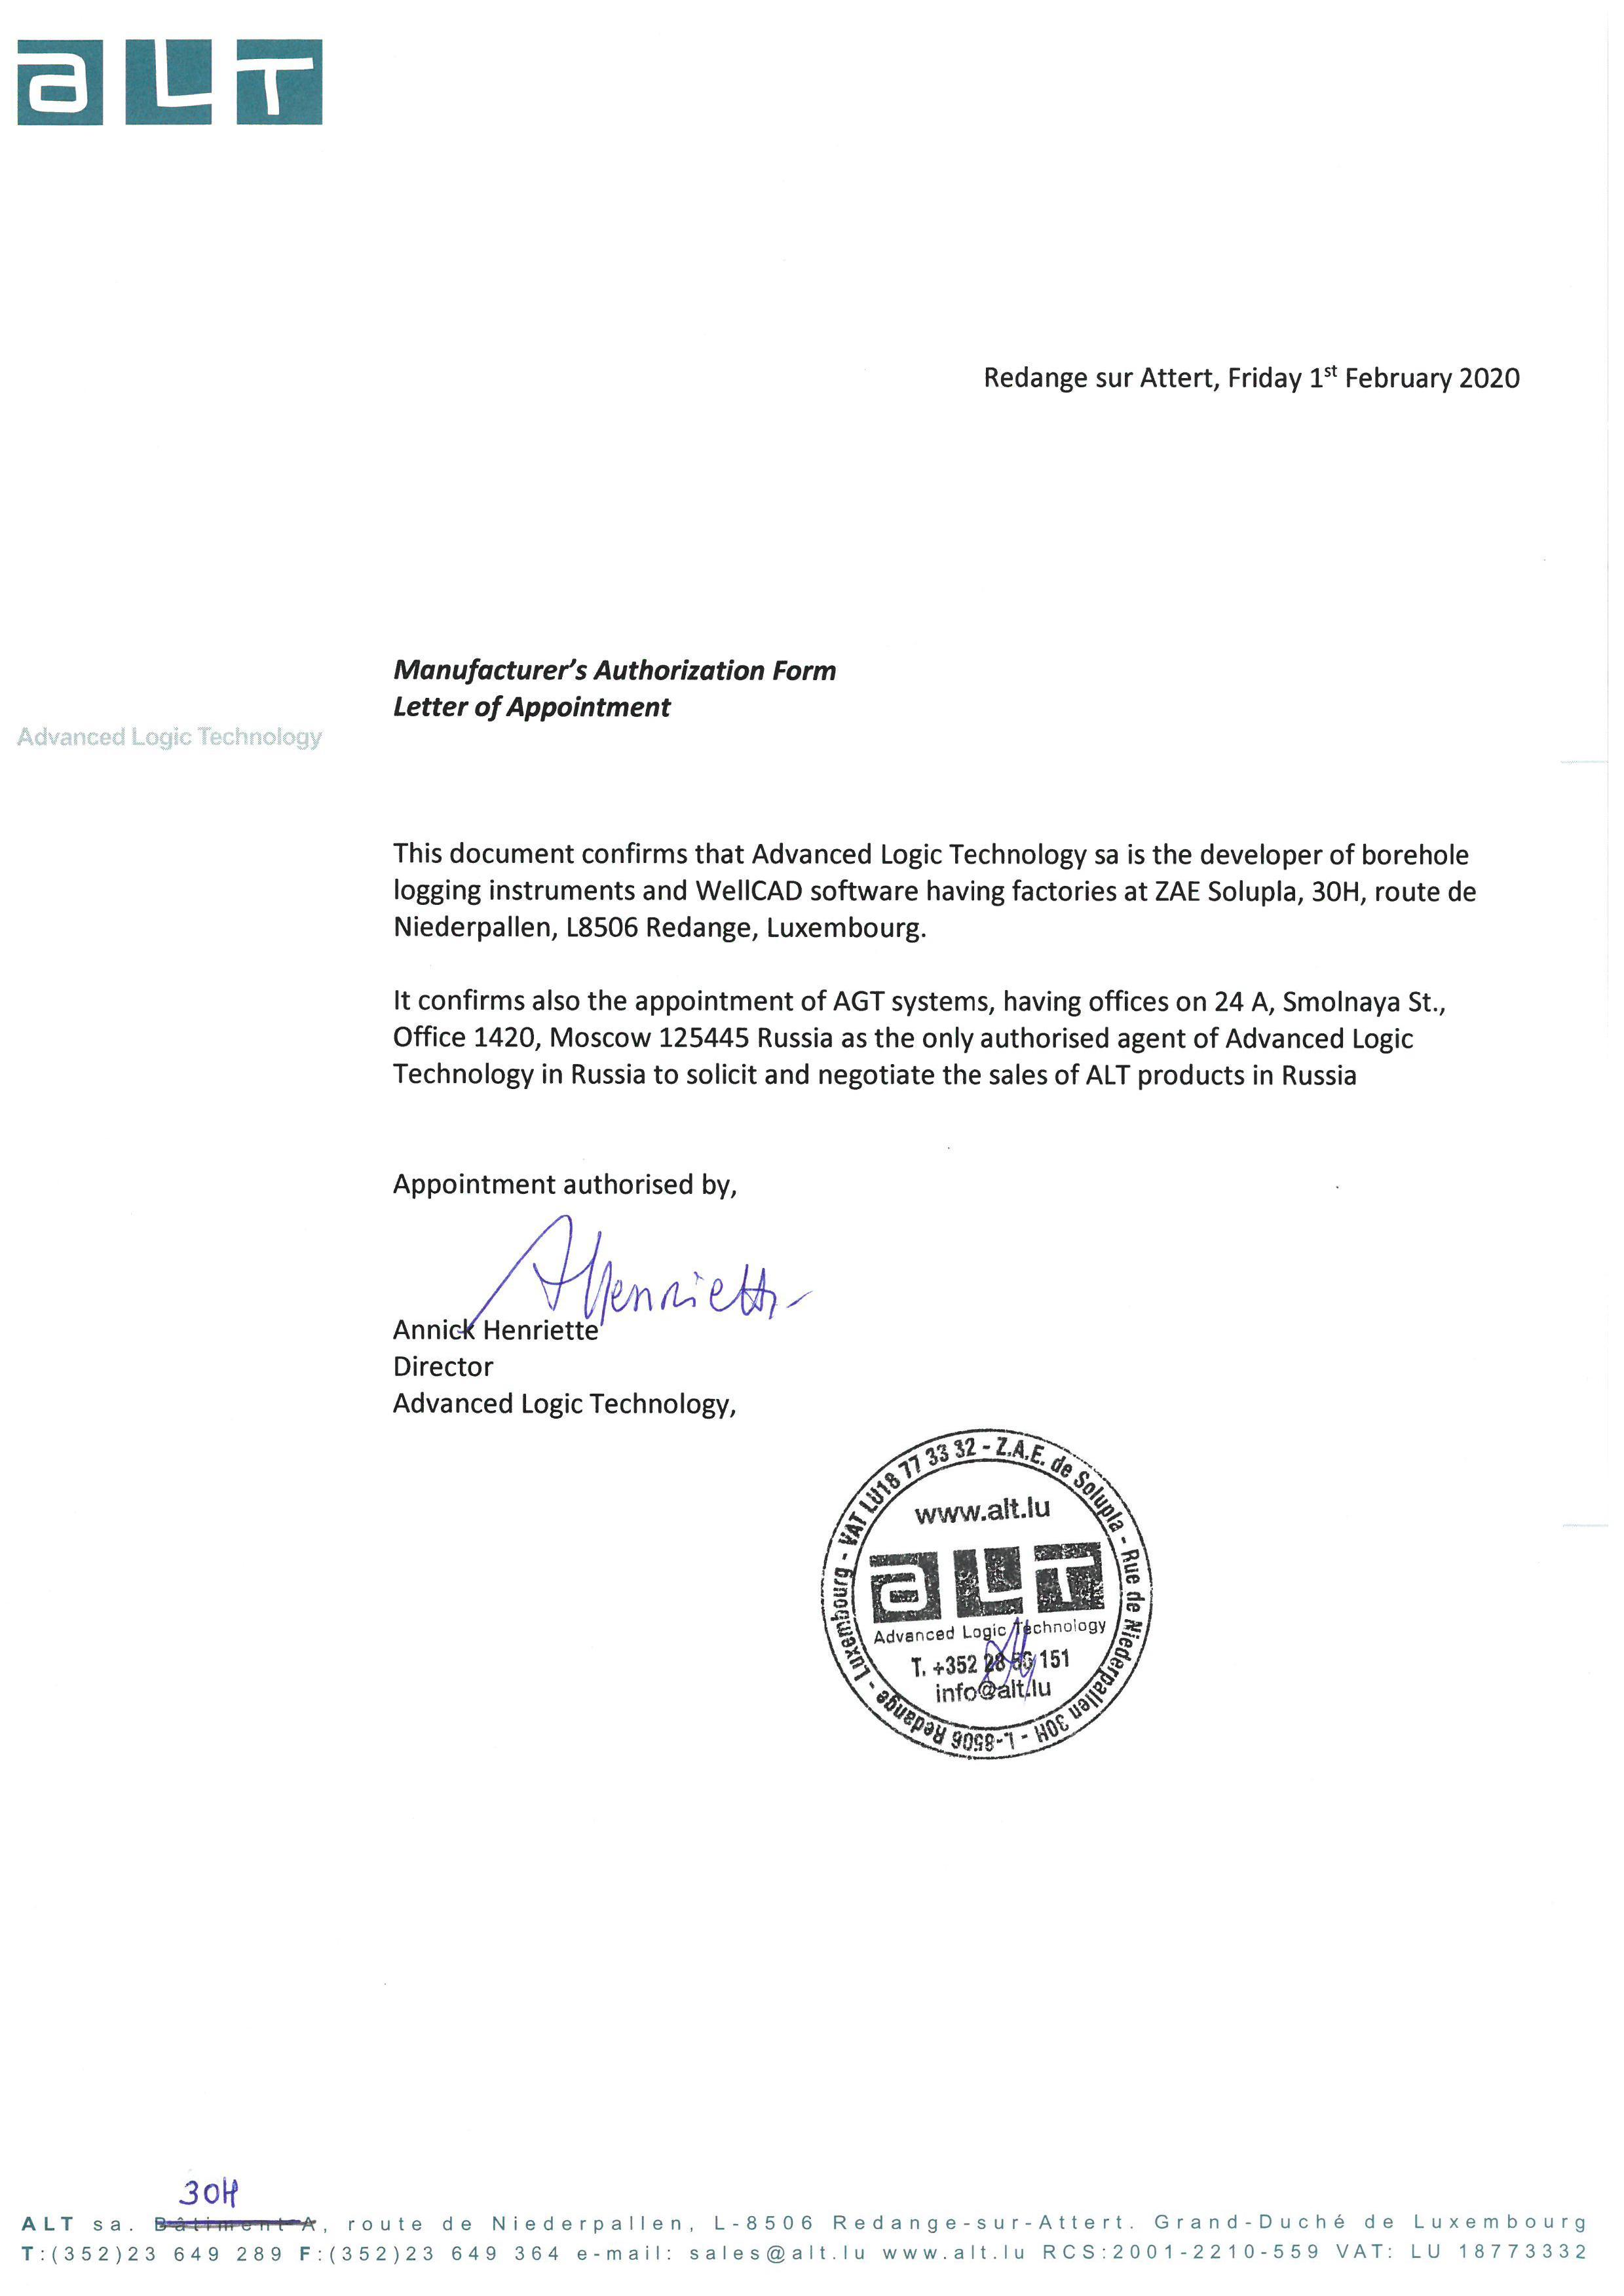 Letter of Authorization with ALT